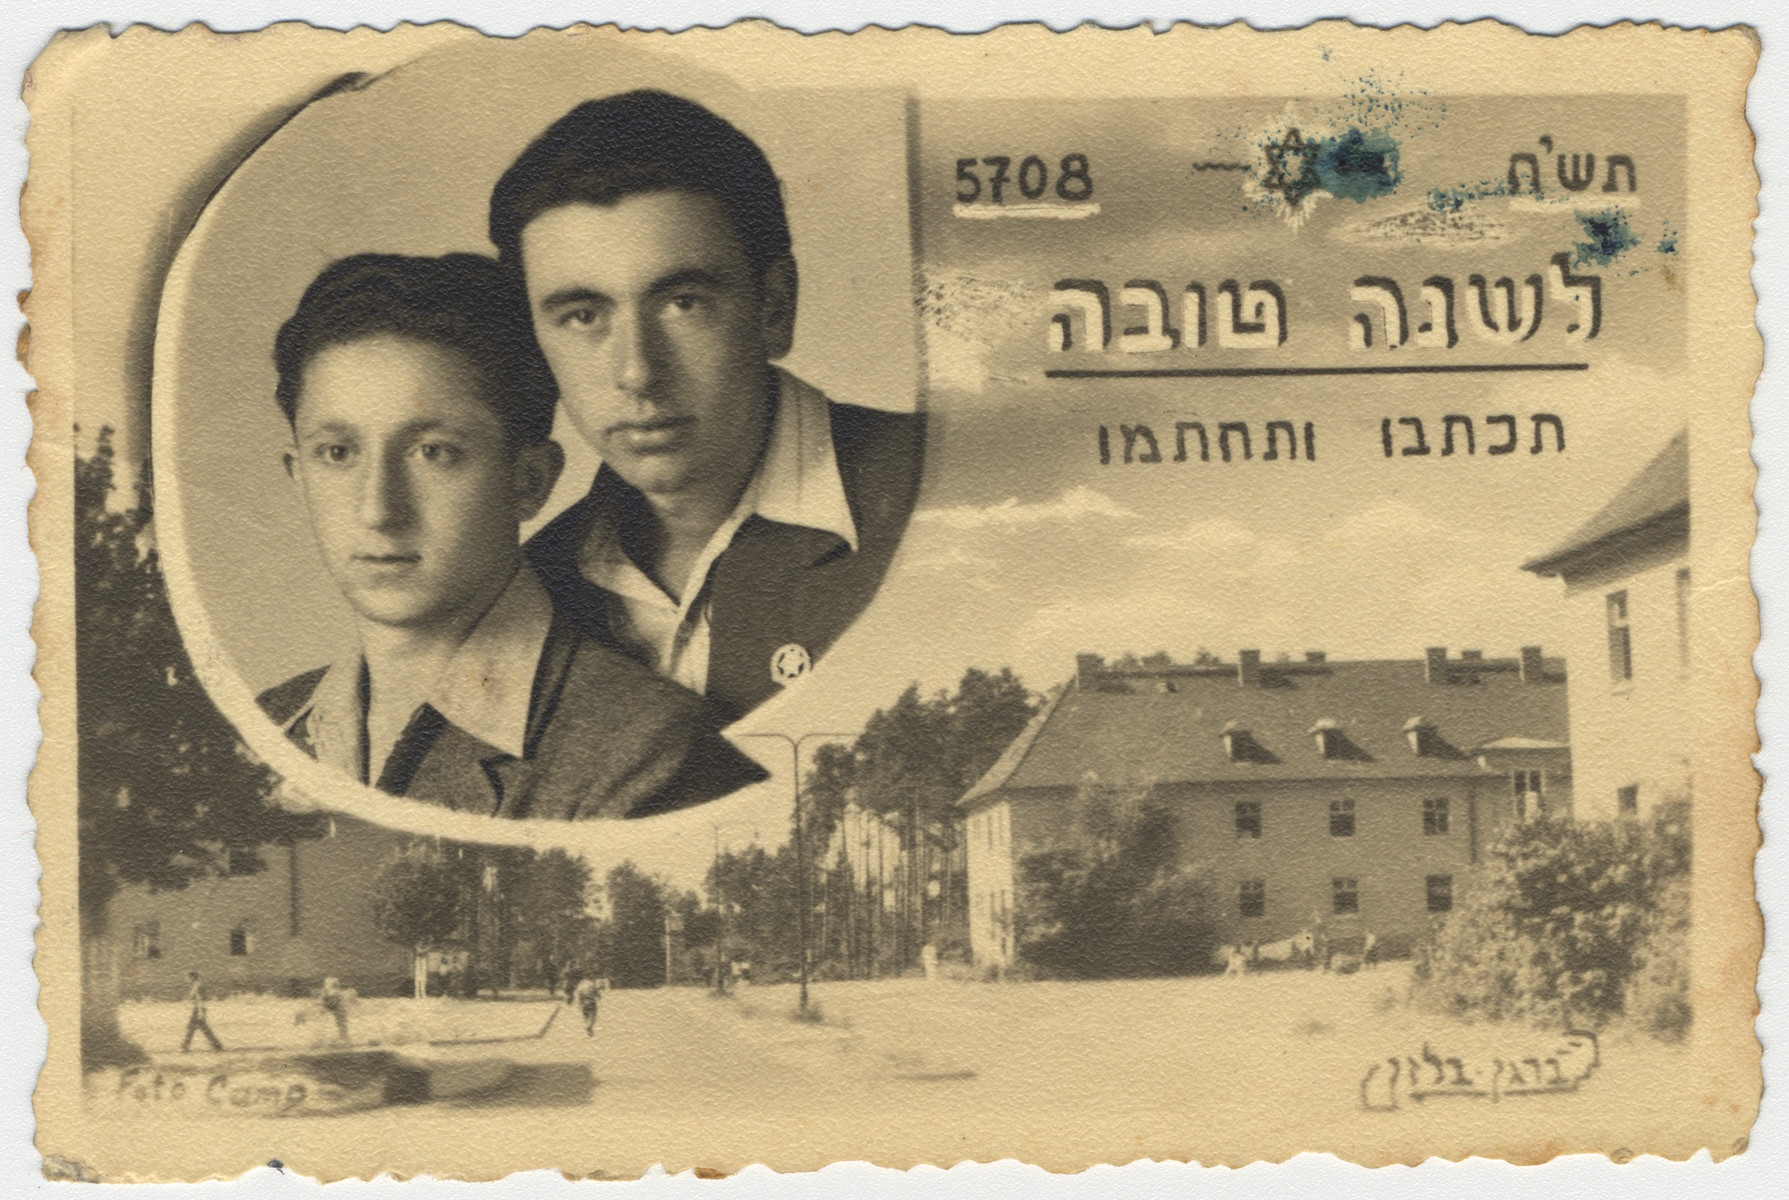 Jewish New Year's card sent from Max Schanzer and Moniek Wild from the Bergen-Belsen displaced persons's camp.